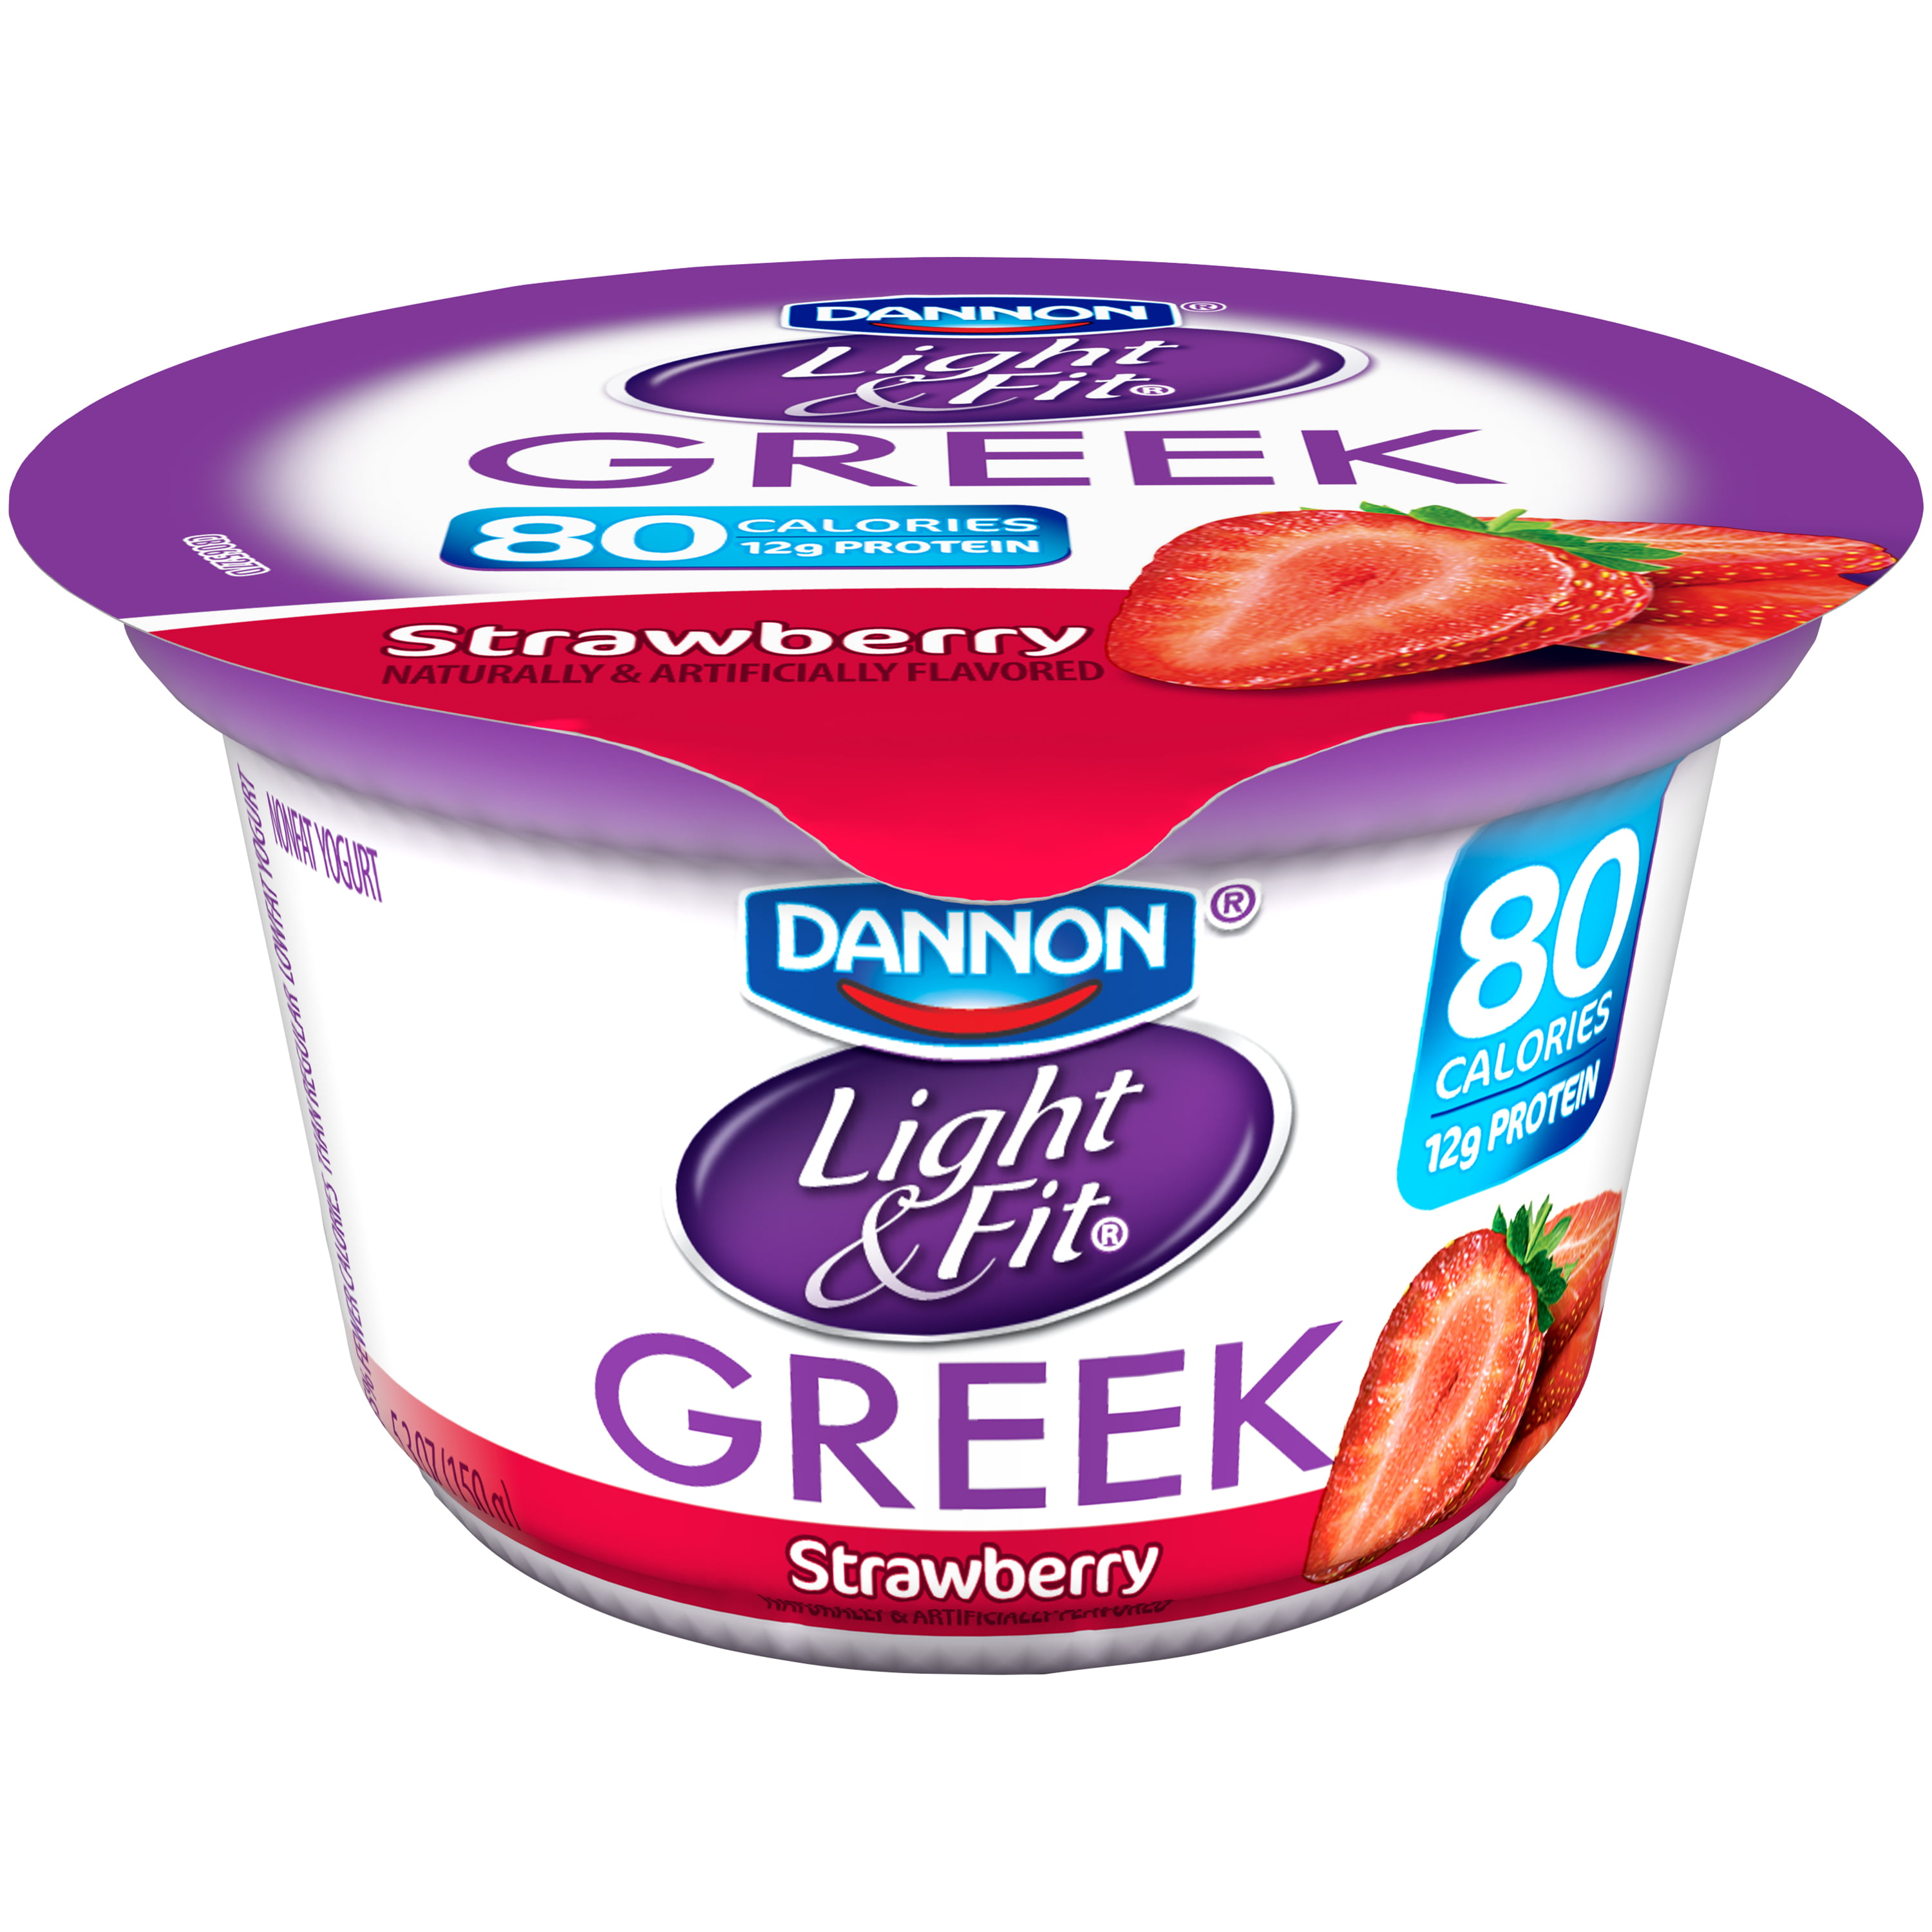 Great Dannon Light U0026 Fit Greek Vanilla Nonfat Yogurt, 5.3 Oz, 4 Ct   Walmart.com Pictures Gallery